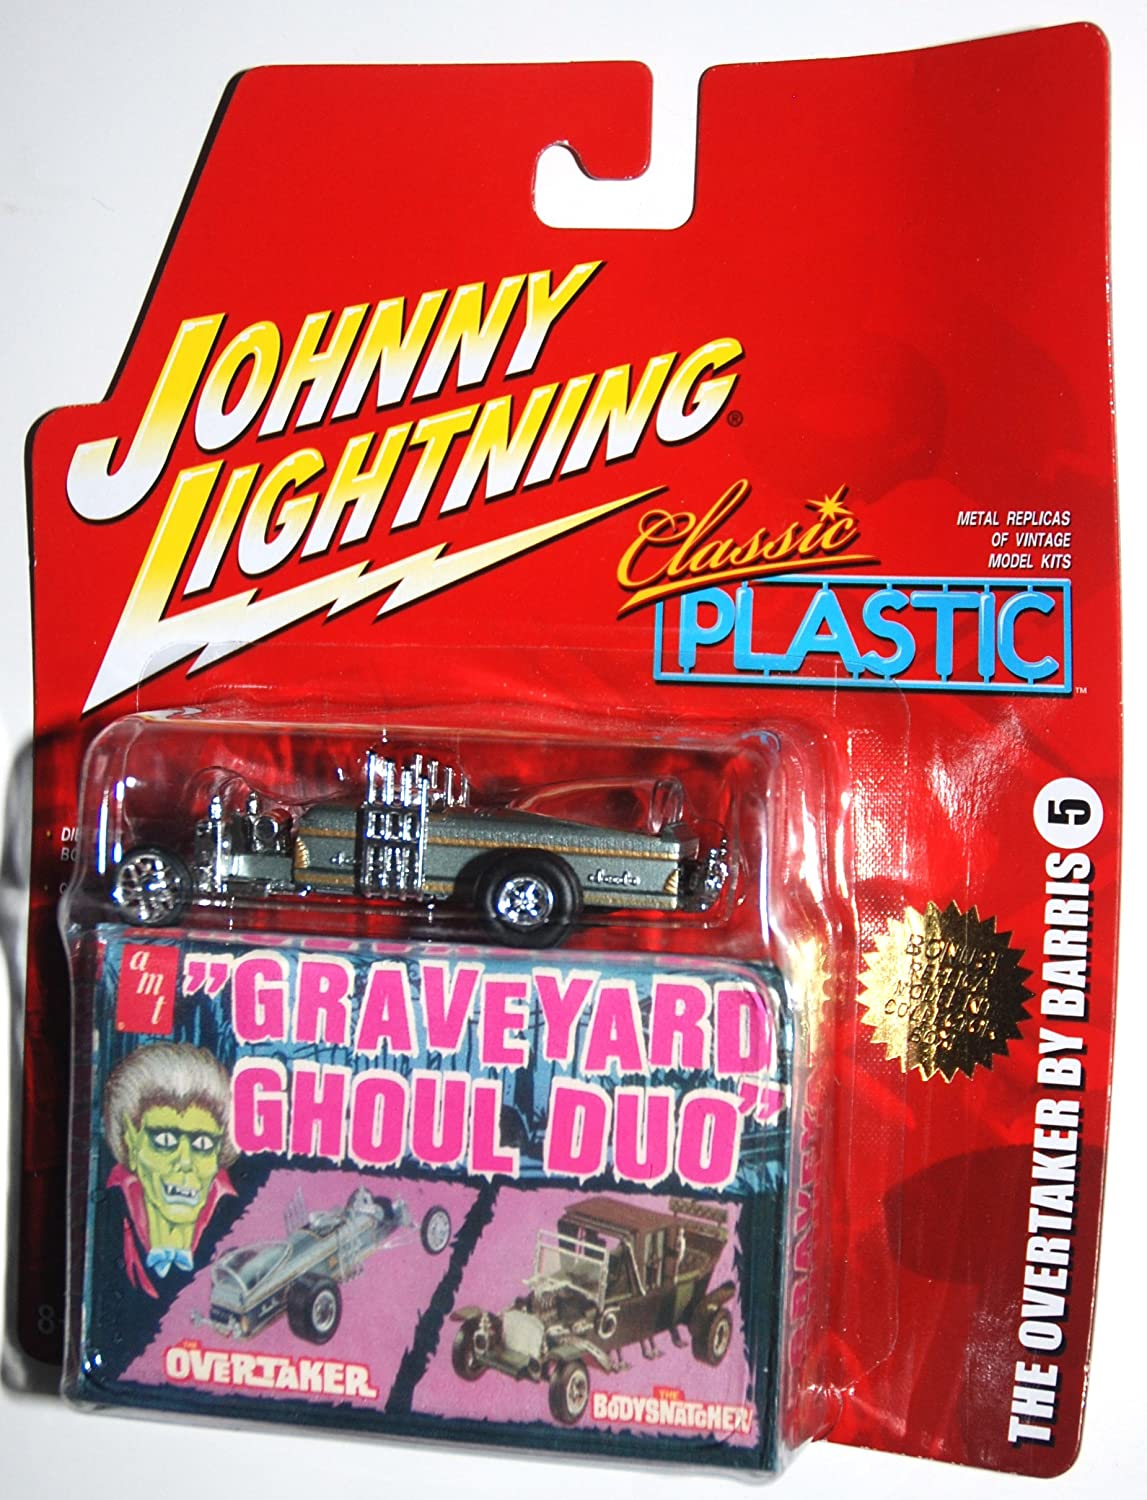 bienvenido a comprar Johnny Lightning Classic Plastic Series Series Series The Overtaker by Barris by Johnny Lightning Classic Plastic  sorteos de estadio